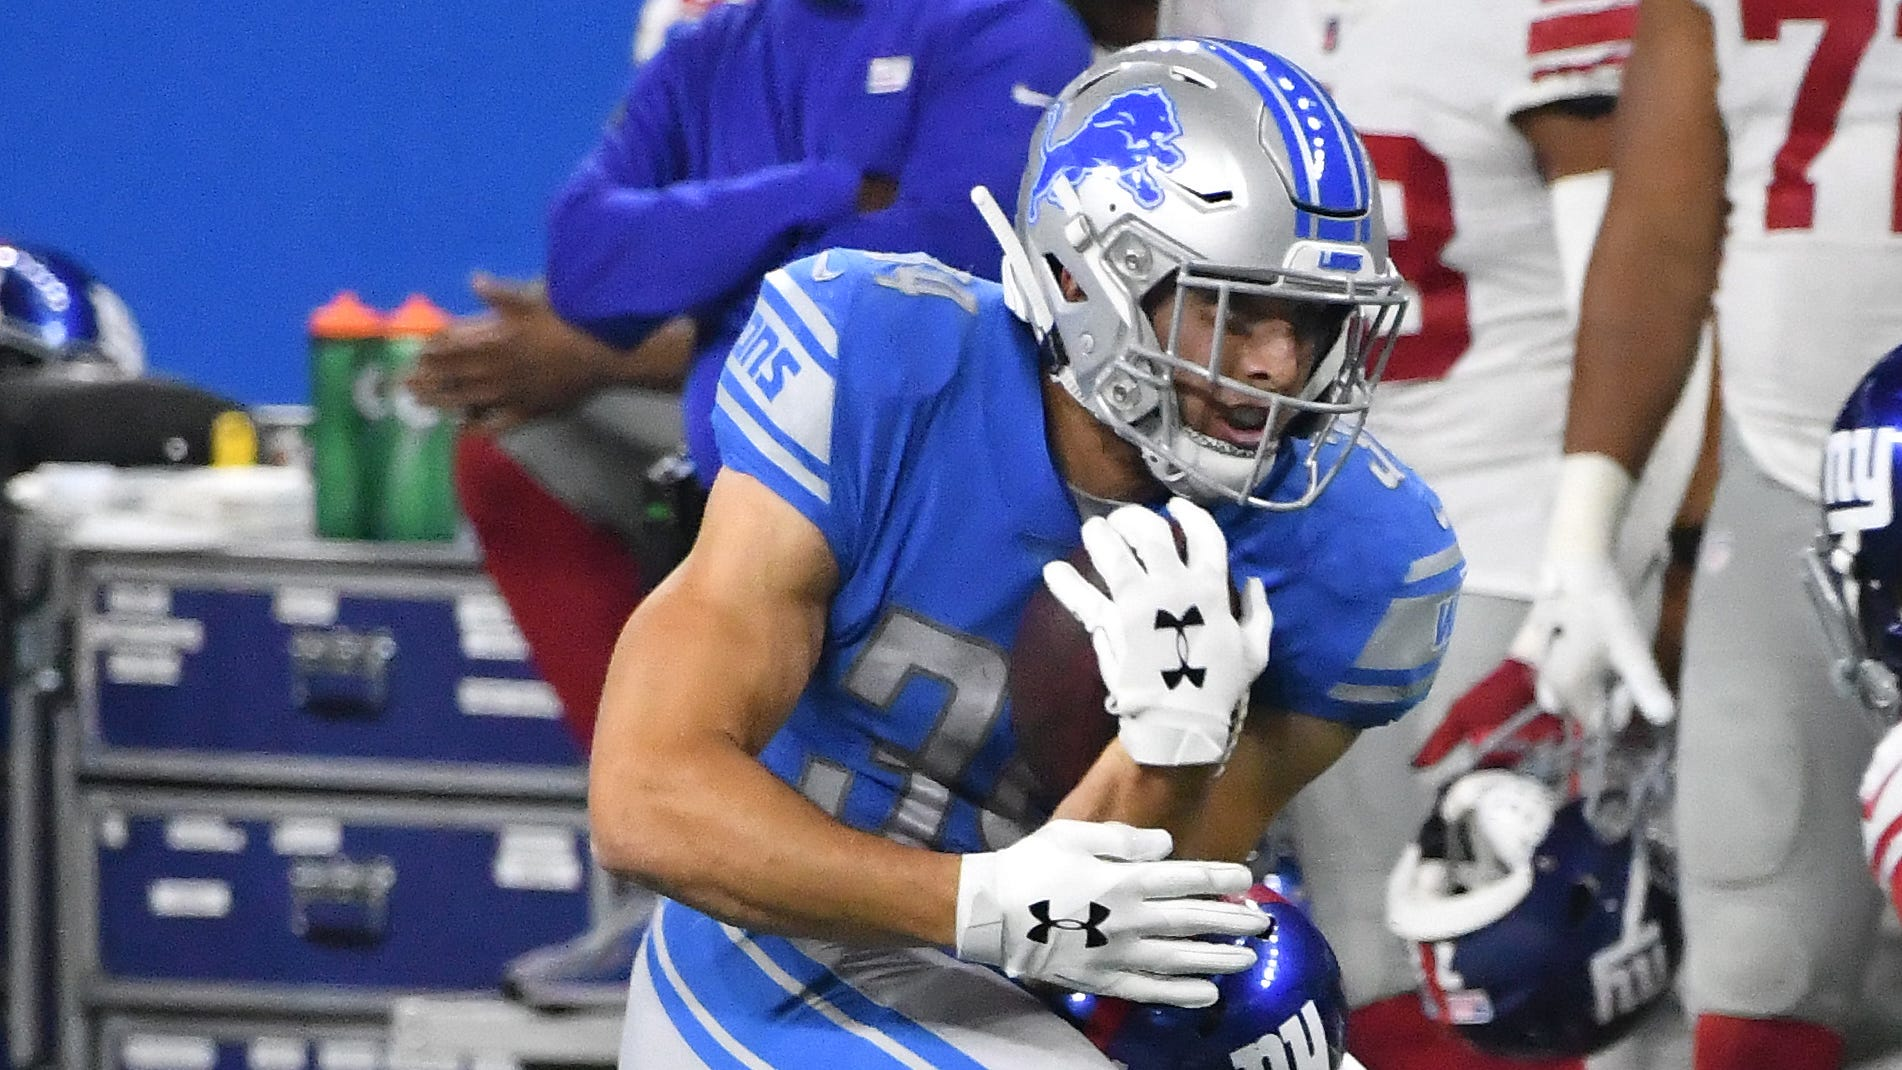 Kerryon Johnson's injury could open the door for Zach Zenner to see more work.